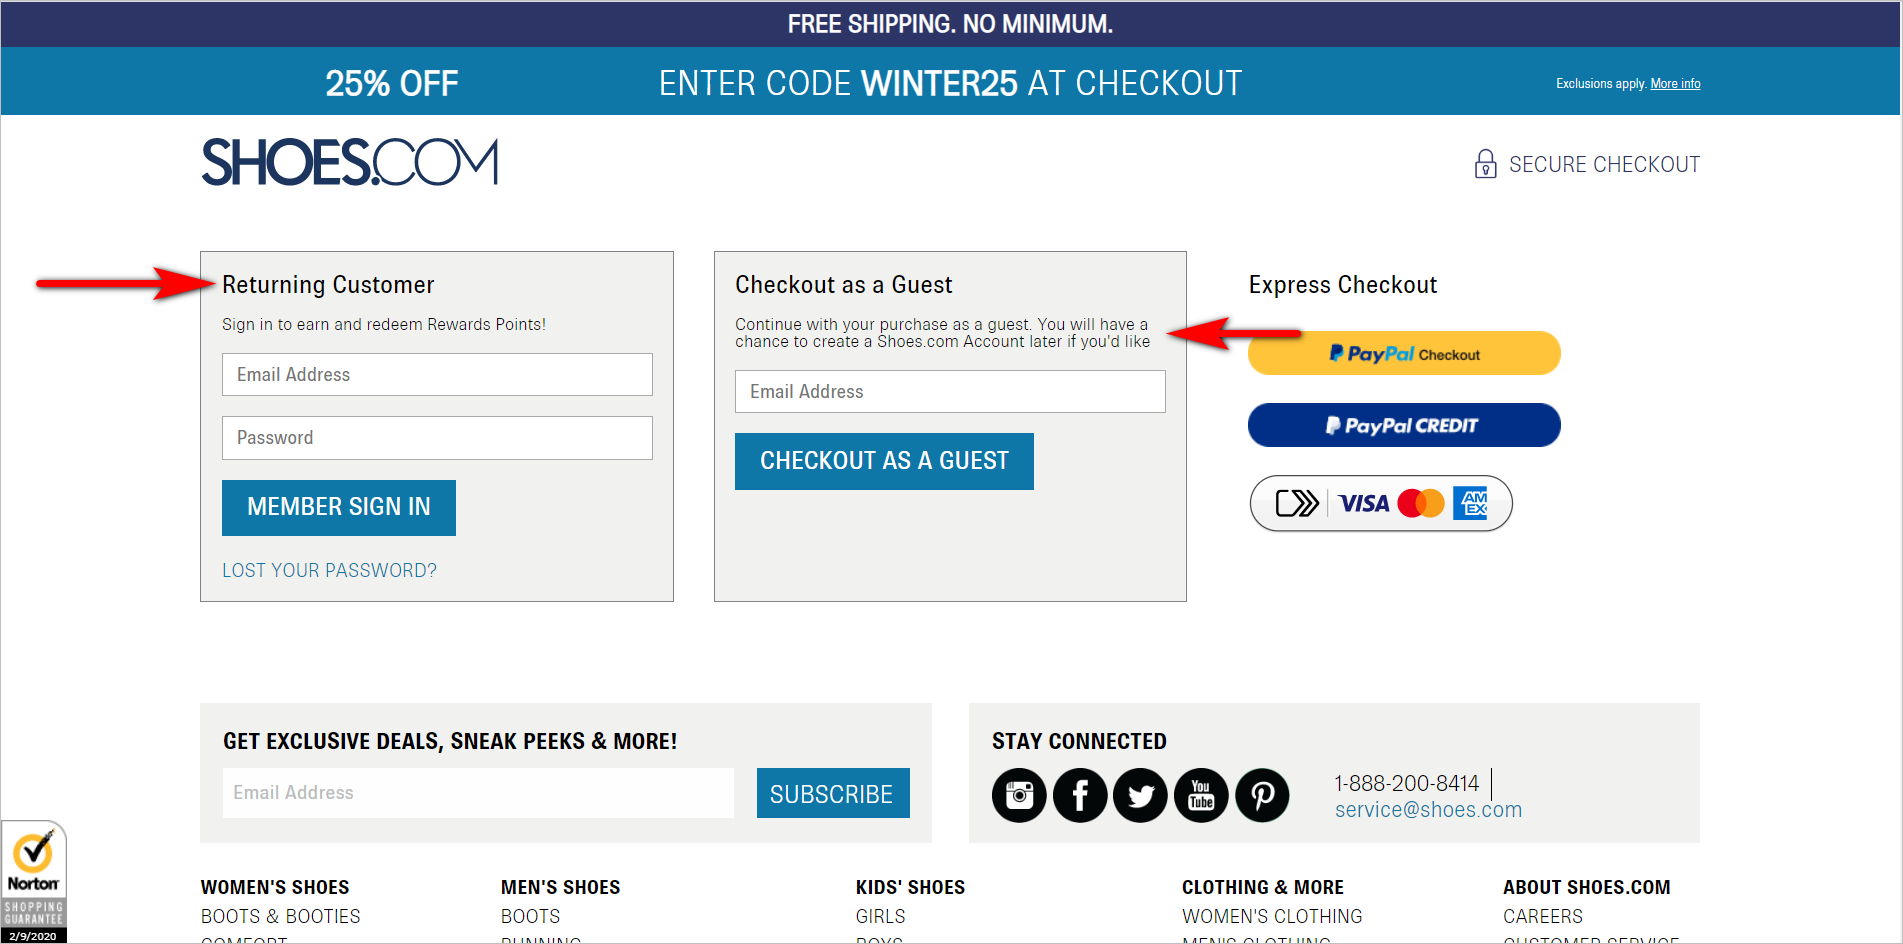 ecommerce checkout best practices - allowing guest checkout example - shoes.com checkout with login option for returning customers and an e-mail address field for guest checkout